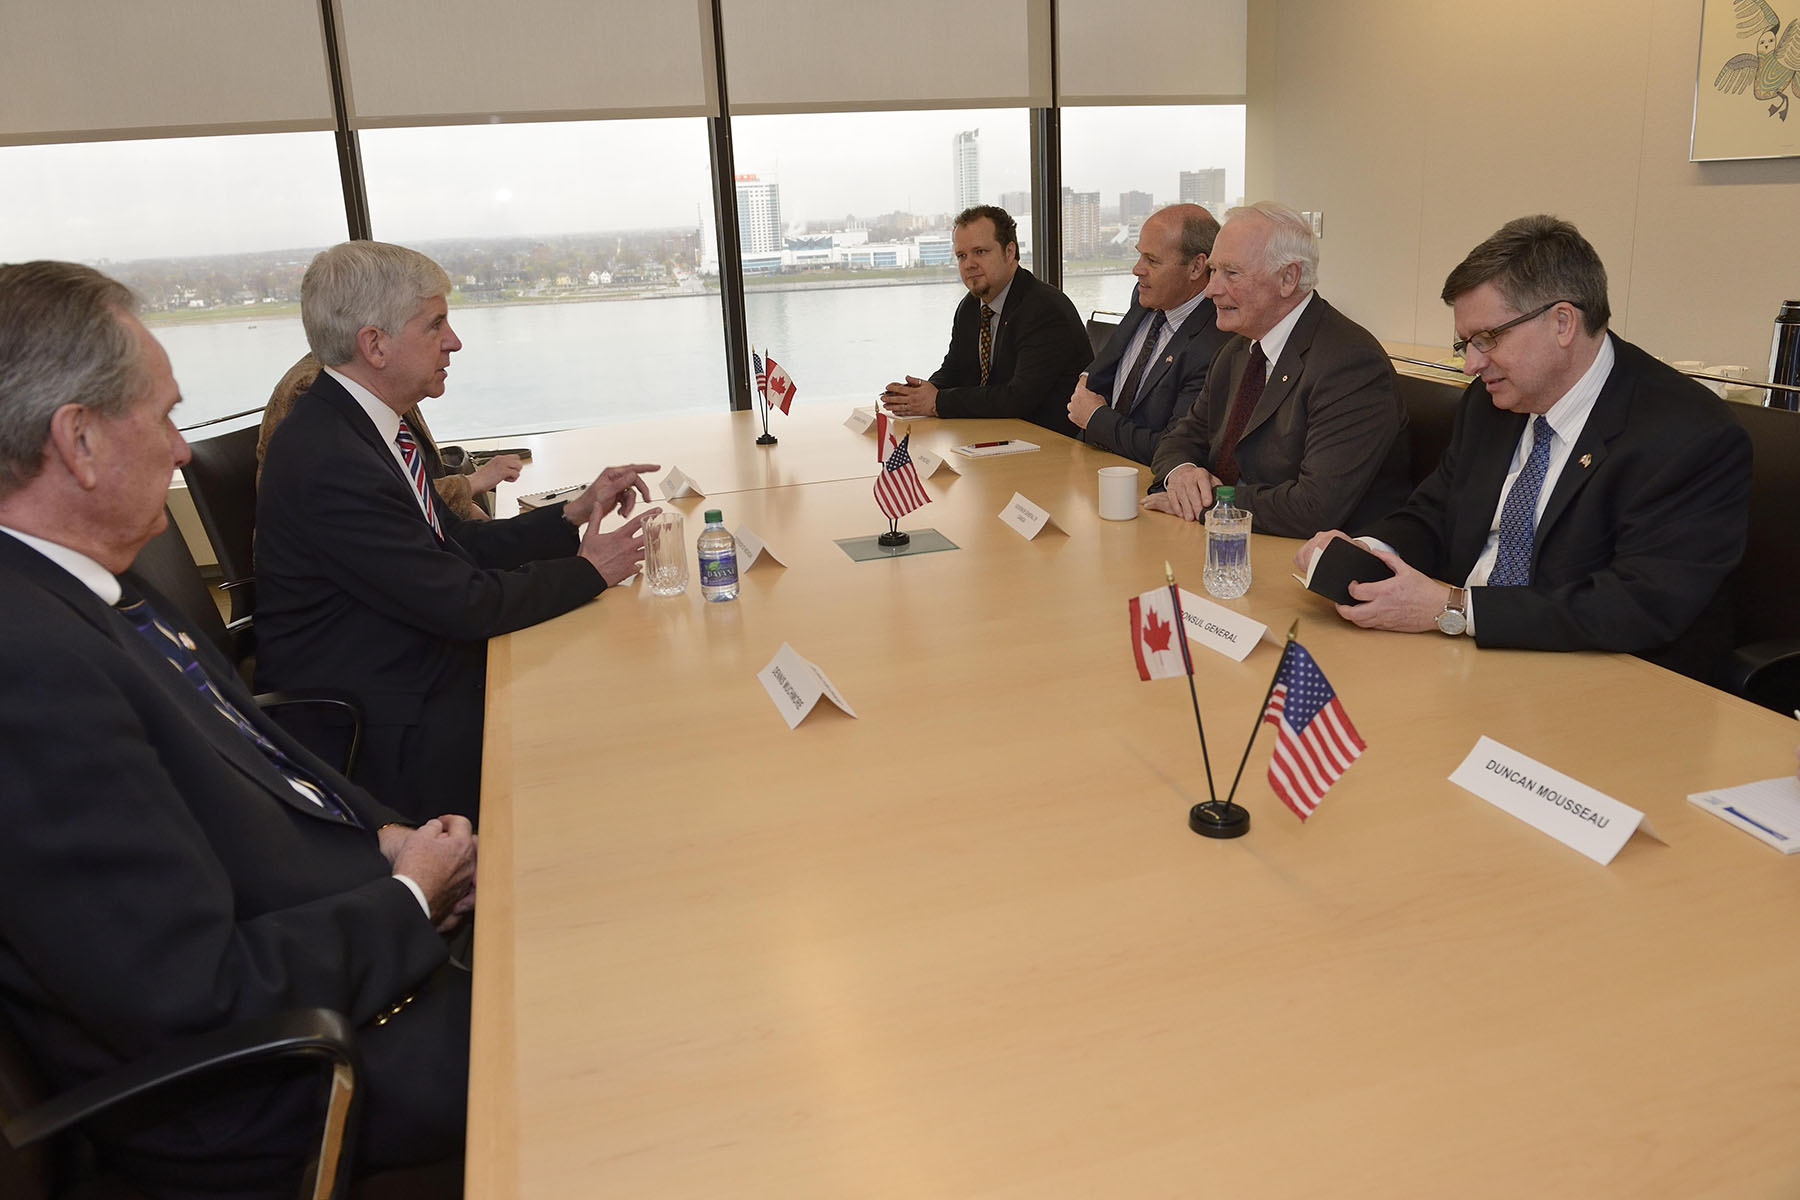 They discussed the importance of Canada-U.S. partnerships in North American competitiveness and Michigan economic prosperity.